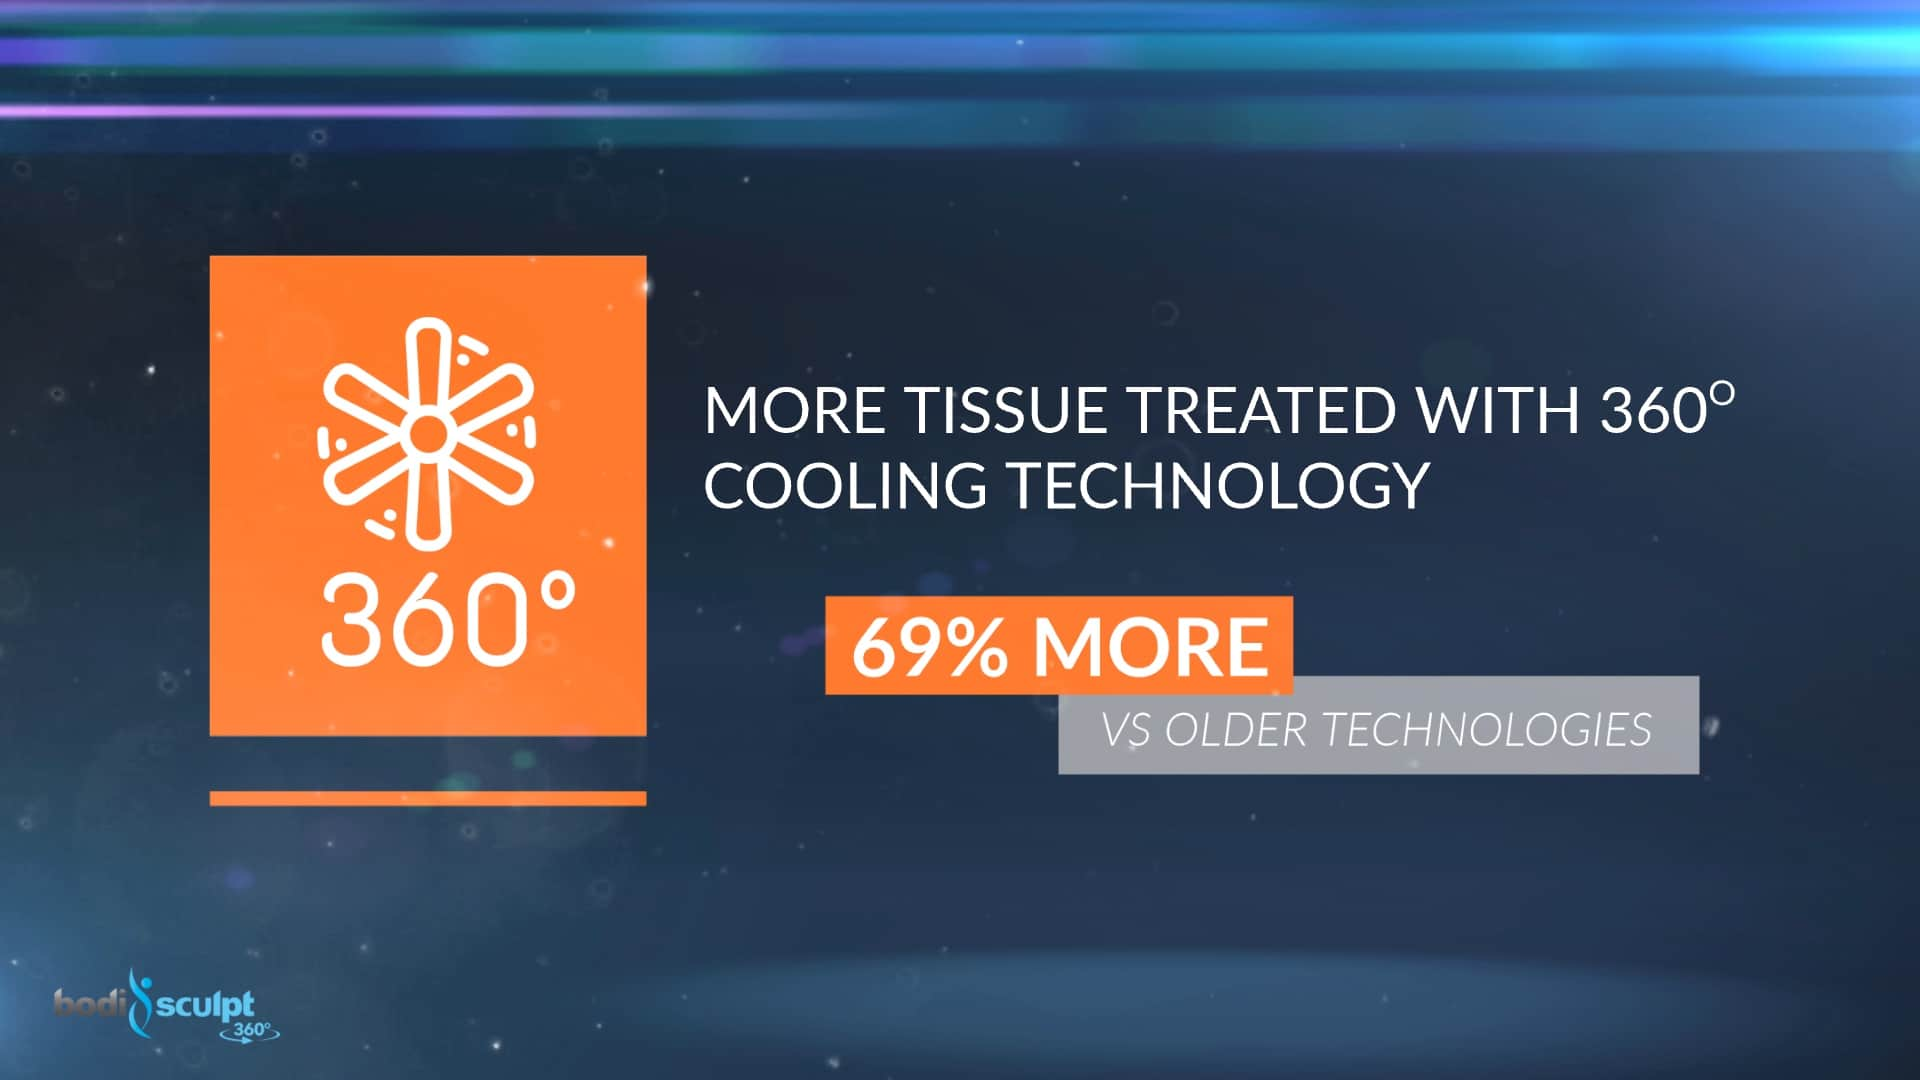 More Tissue Treated With Cooling Technology